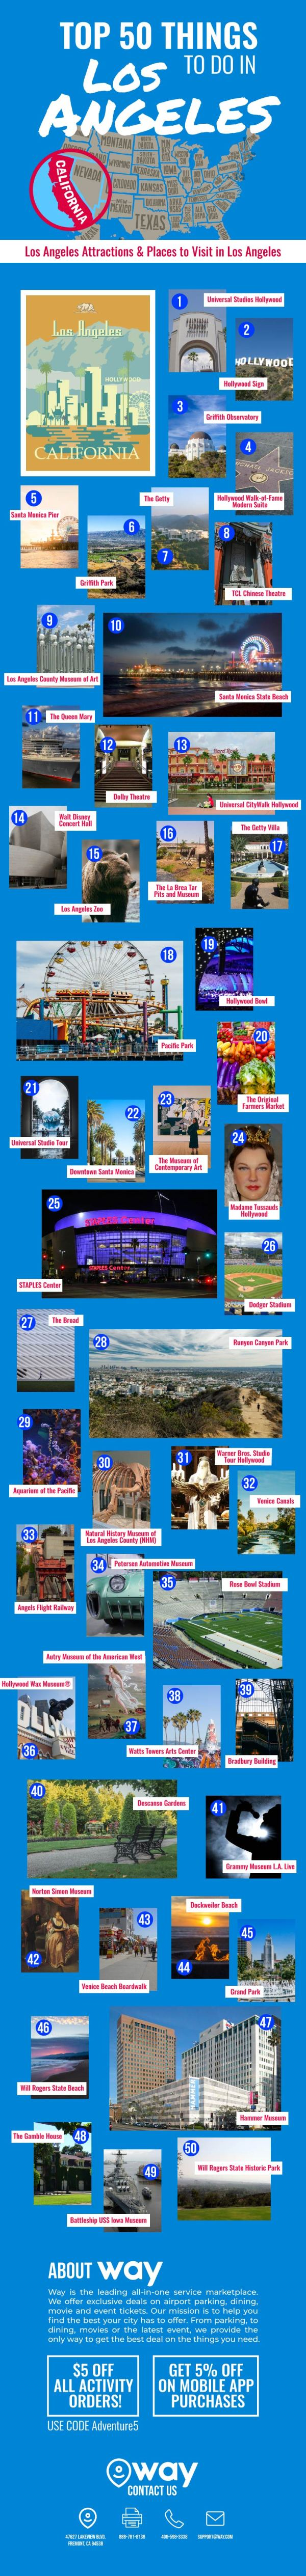 Top 50 Things to Do in Los Angeles-infographic-lkrllc